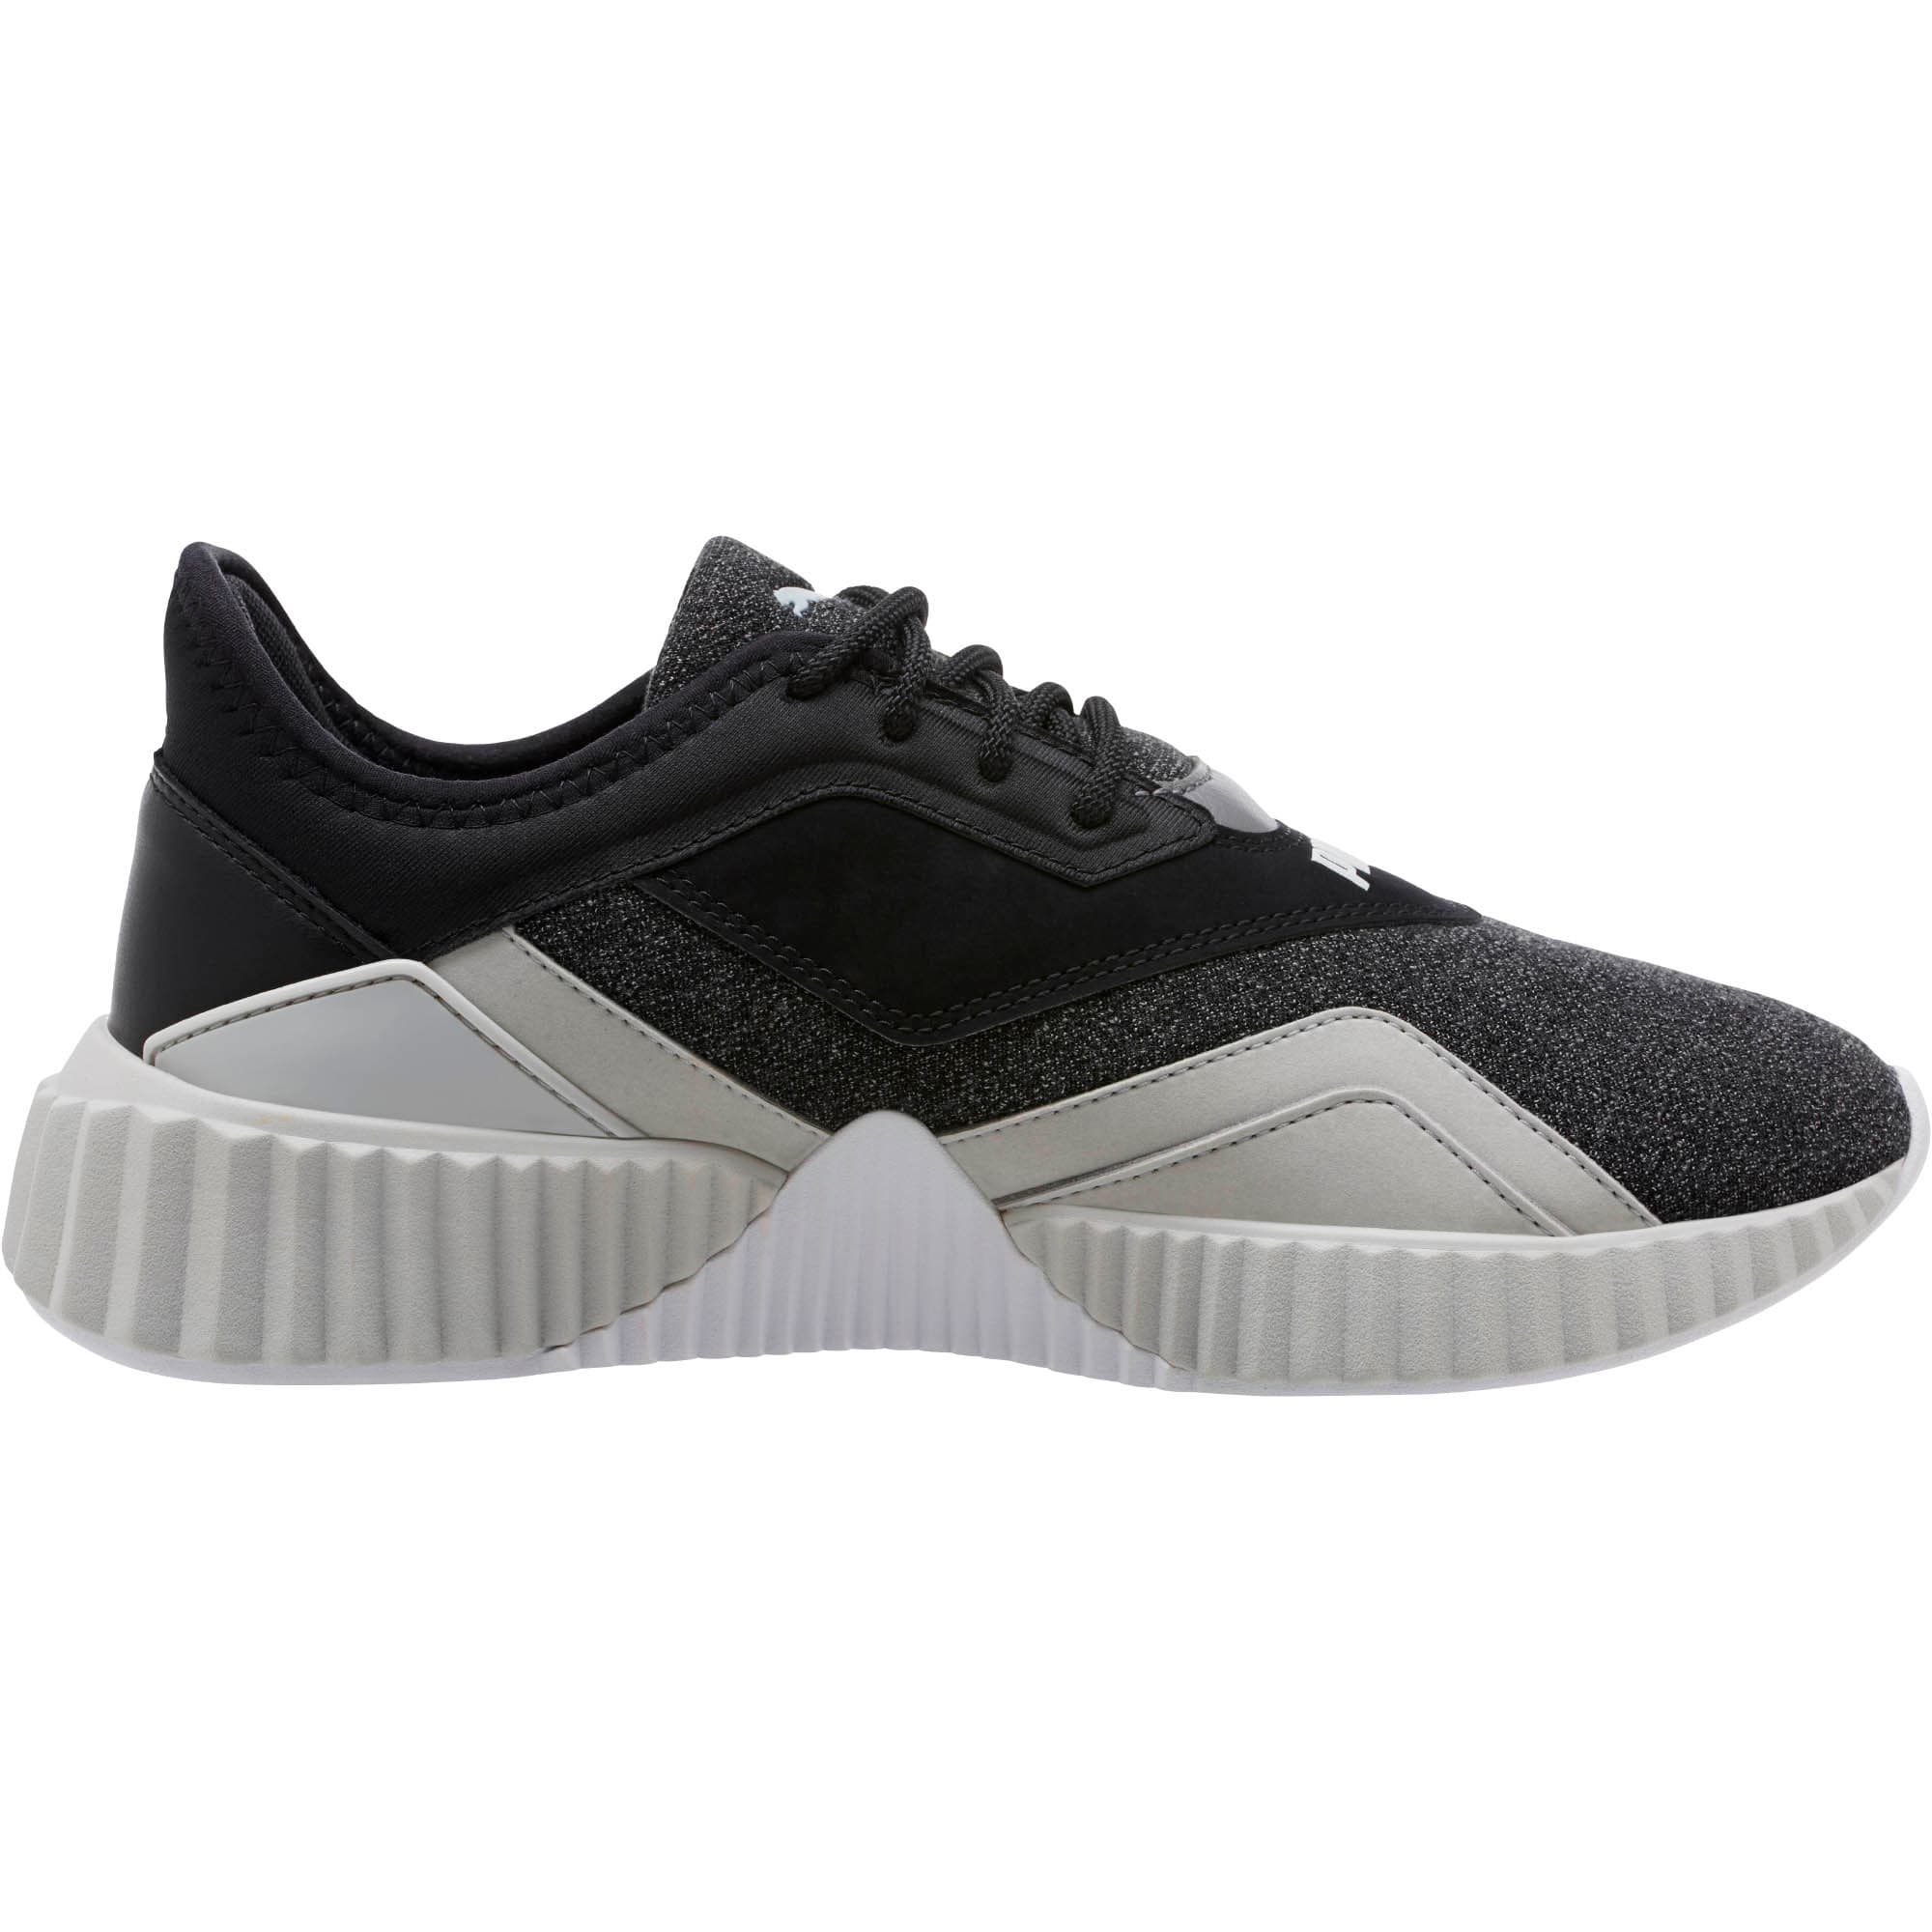 Thumbnail 3 of Defy Stitched Z Women's Training Shoes, Puma Black-Glacier Gray, medium